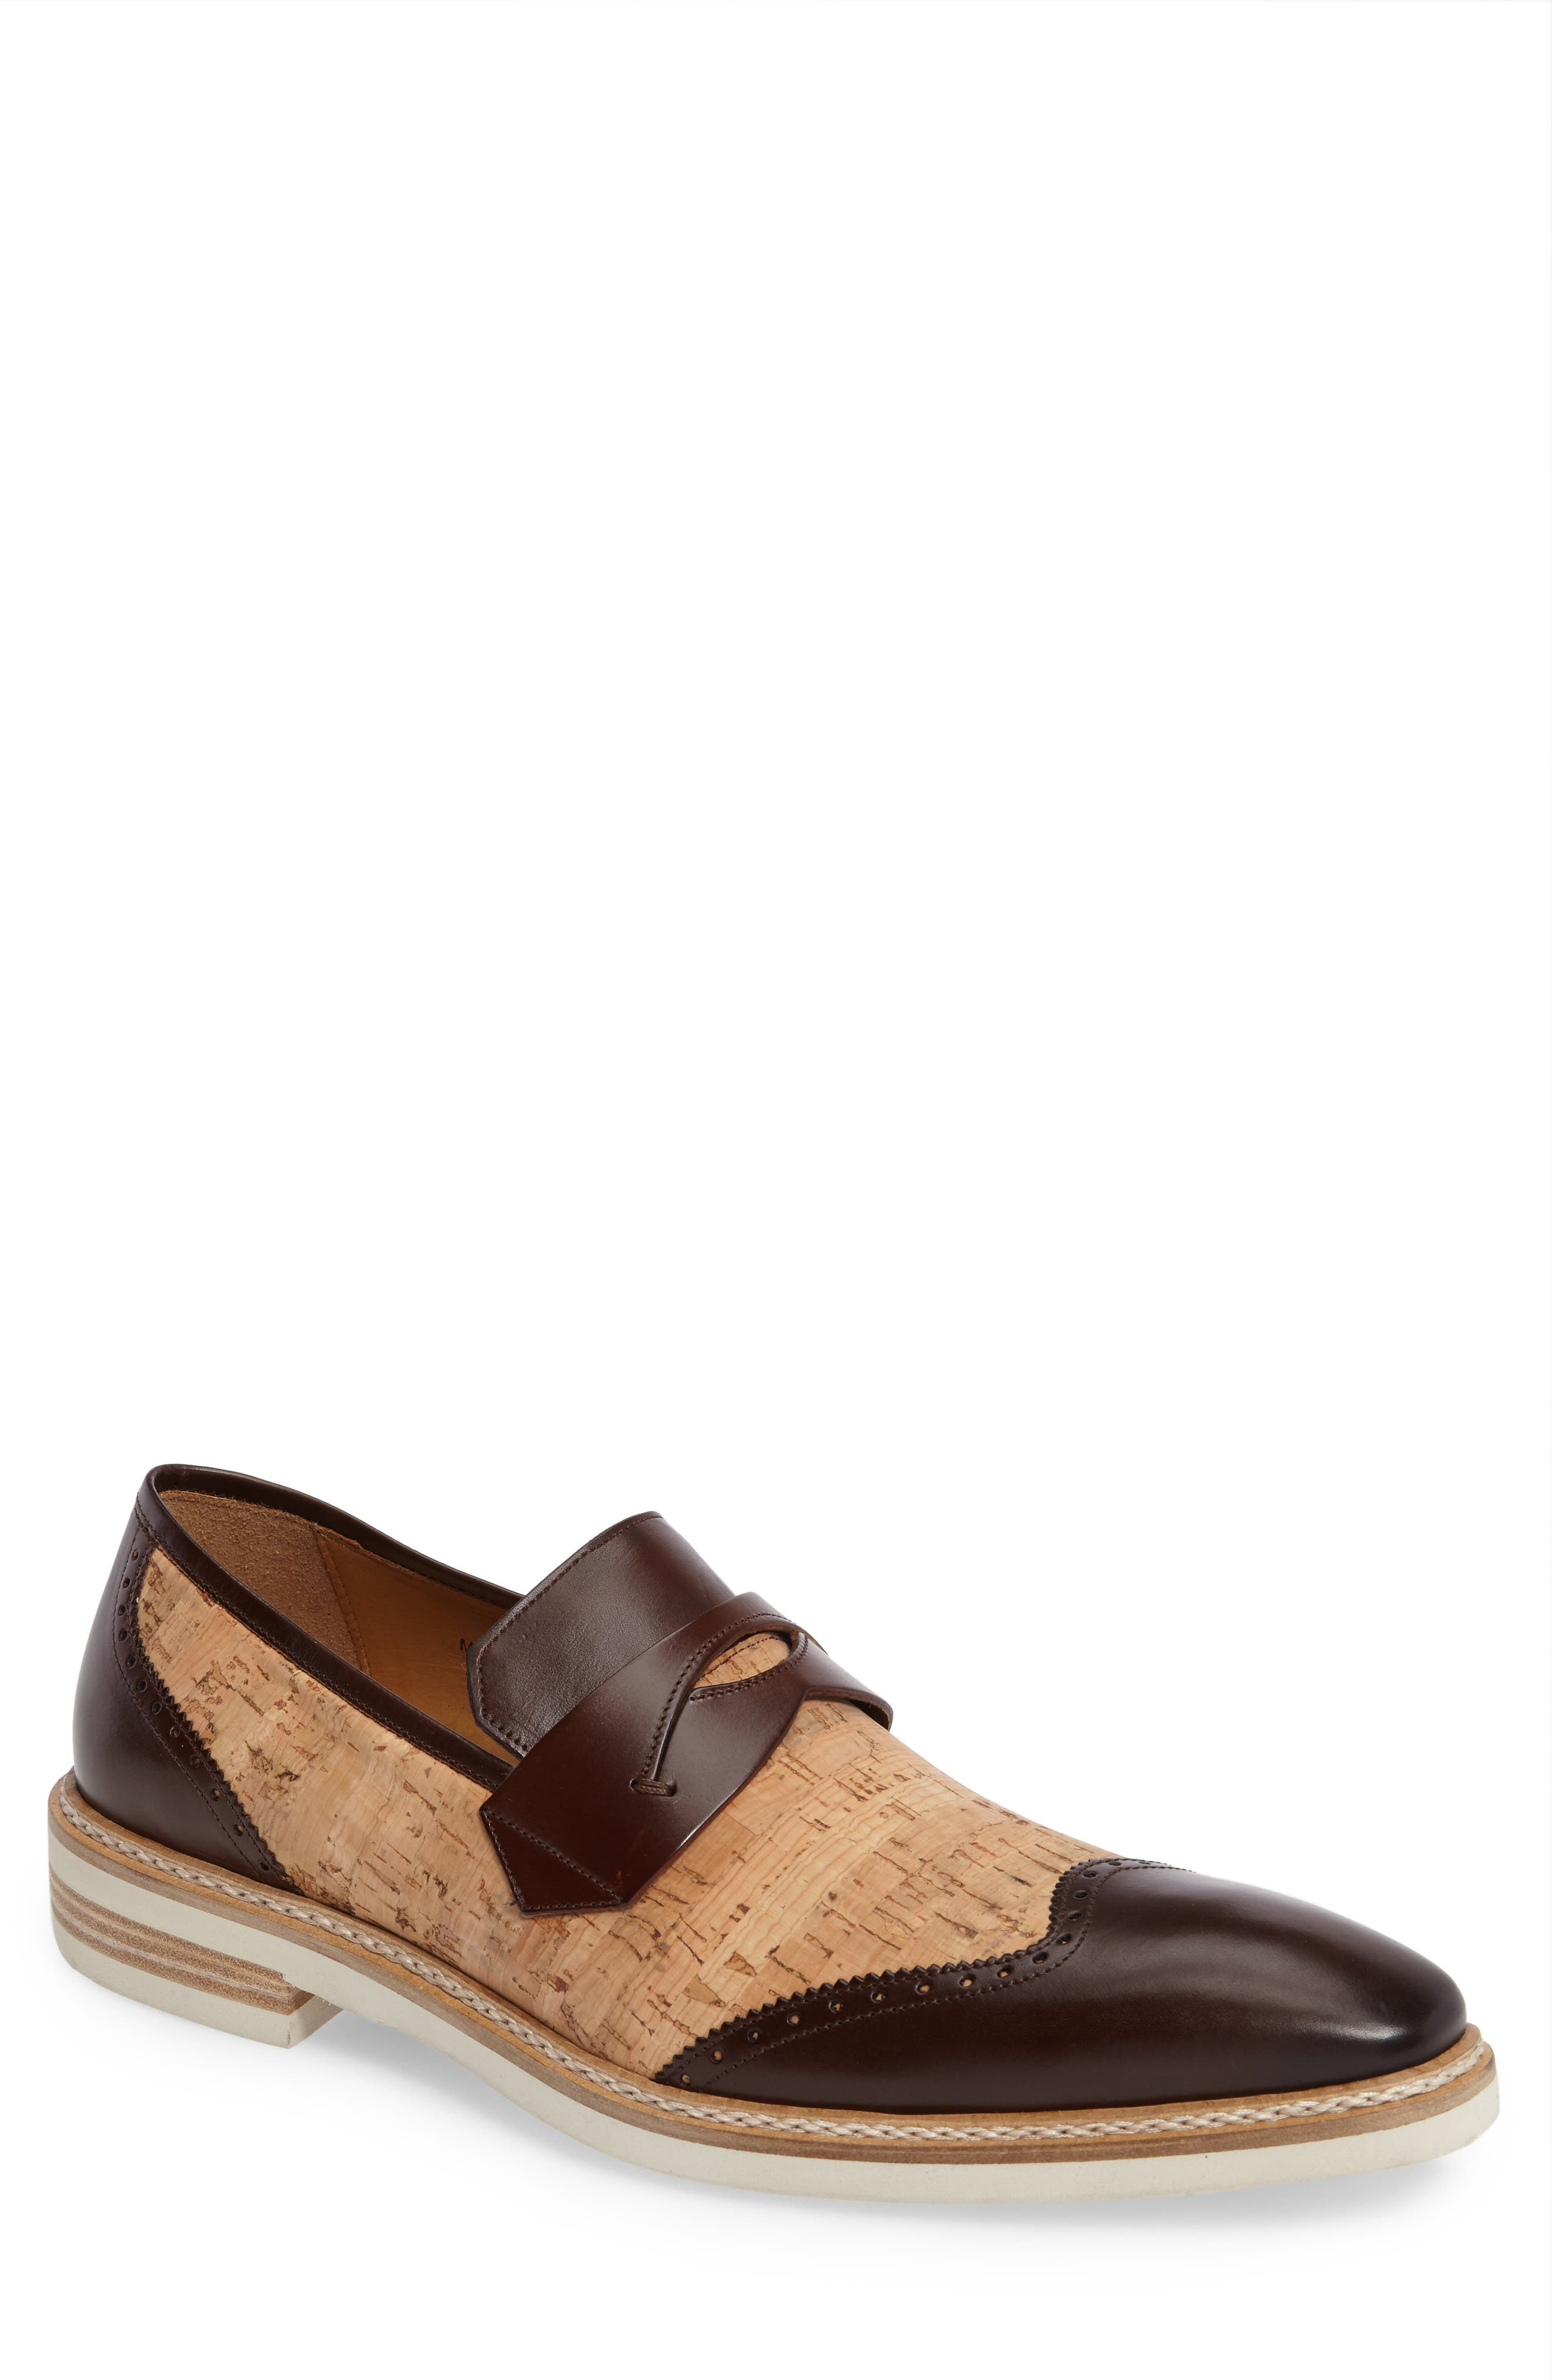 Redi Venetian Loafer,                             Main thumbnail 1, color,                             200